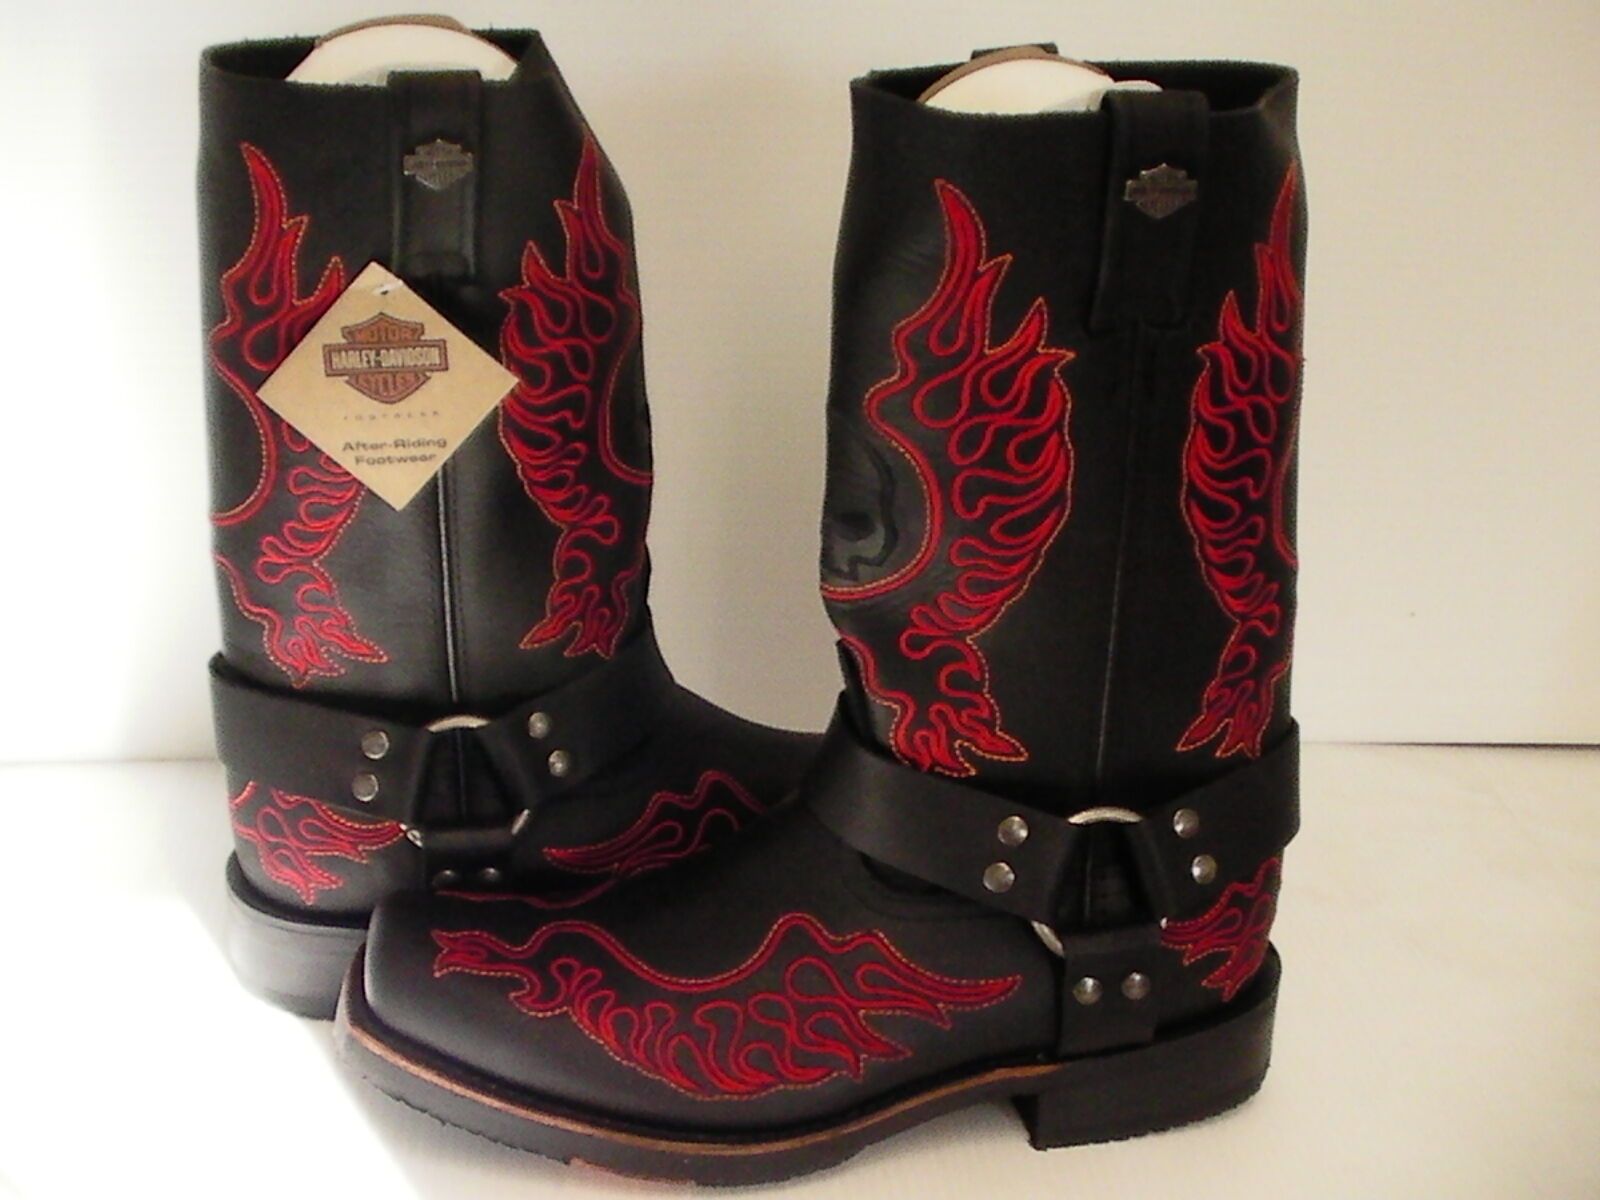 Harley Davidson boots Slayton D93141 leather black oil resisting size 10 men us